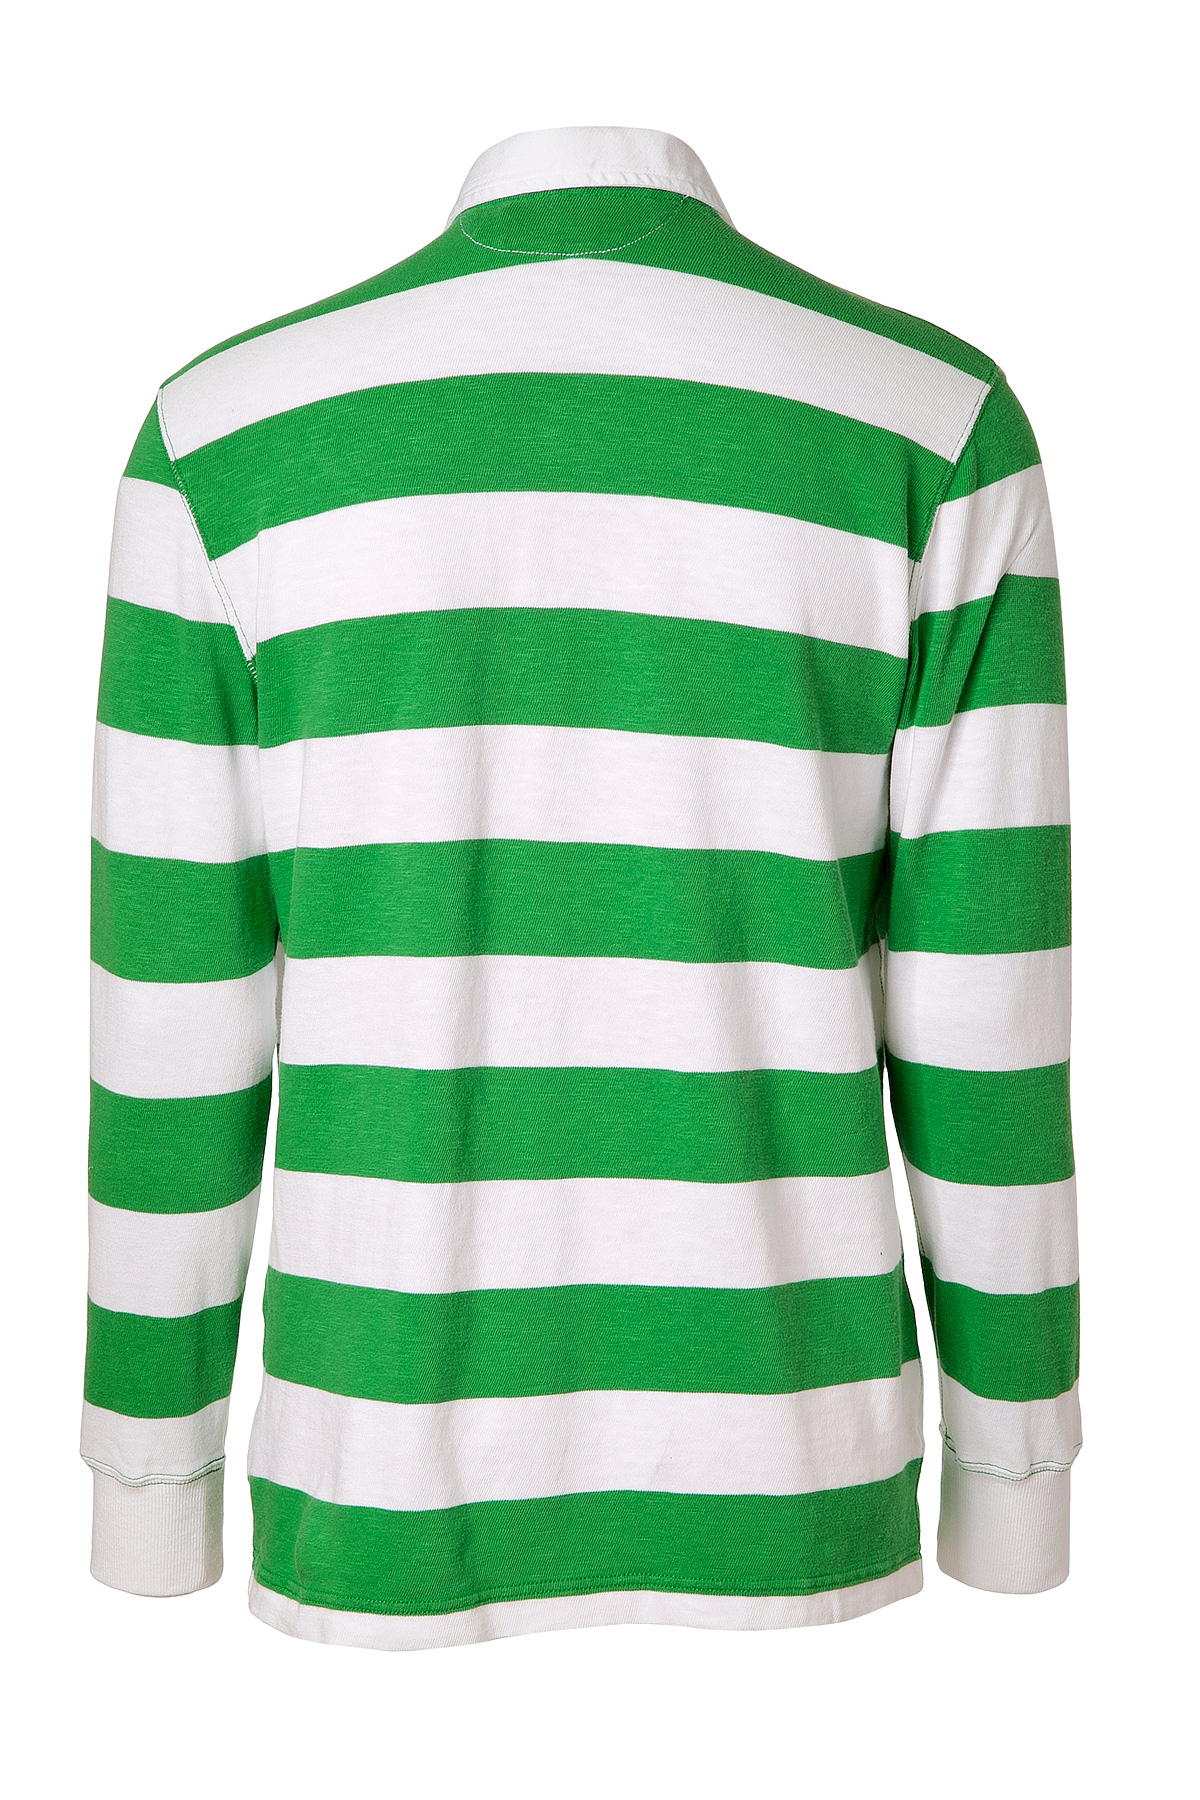 Ralph lauren Signal Greenwhite Striped Cotton Rugby Shirt in Green ...